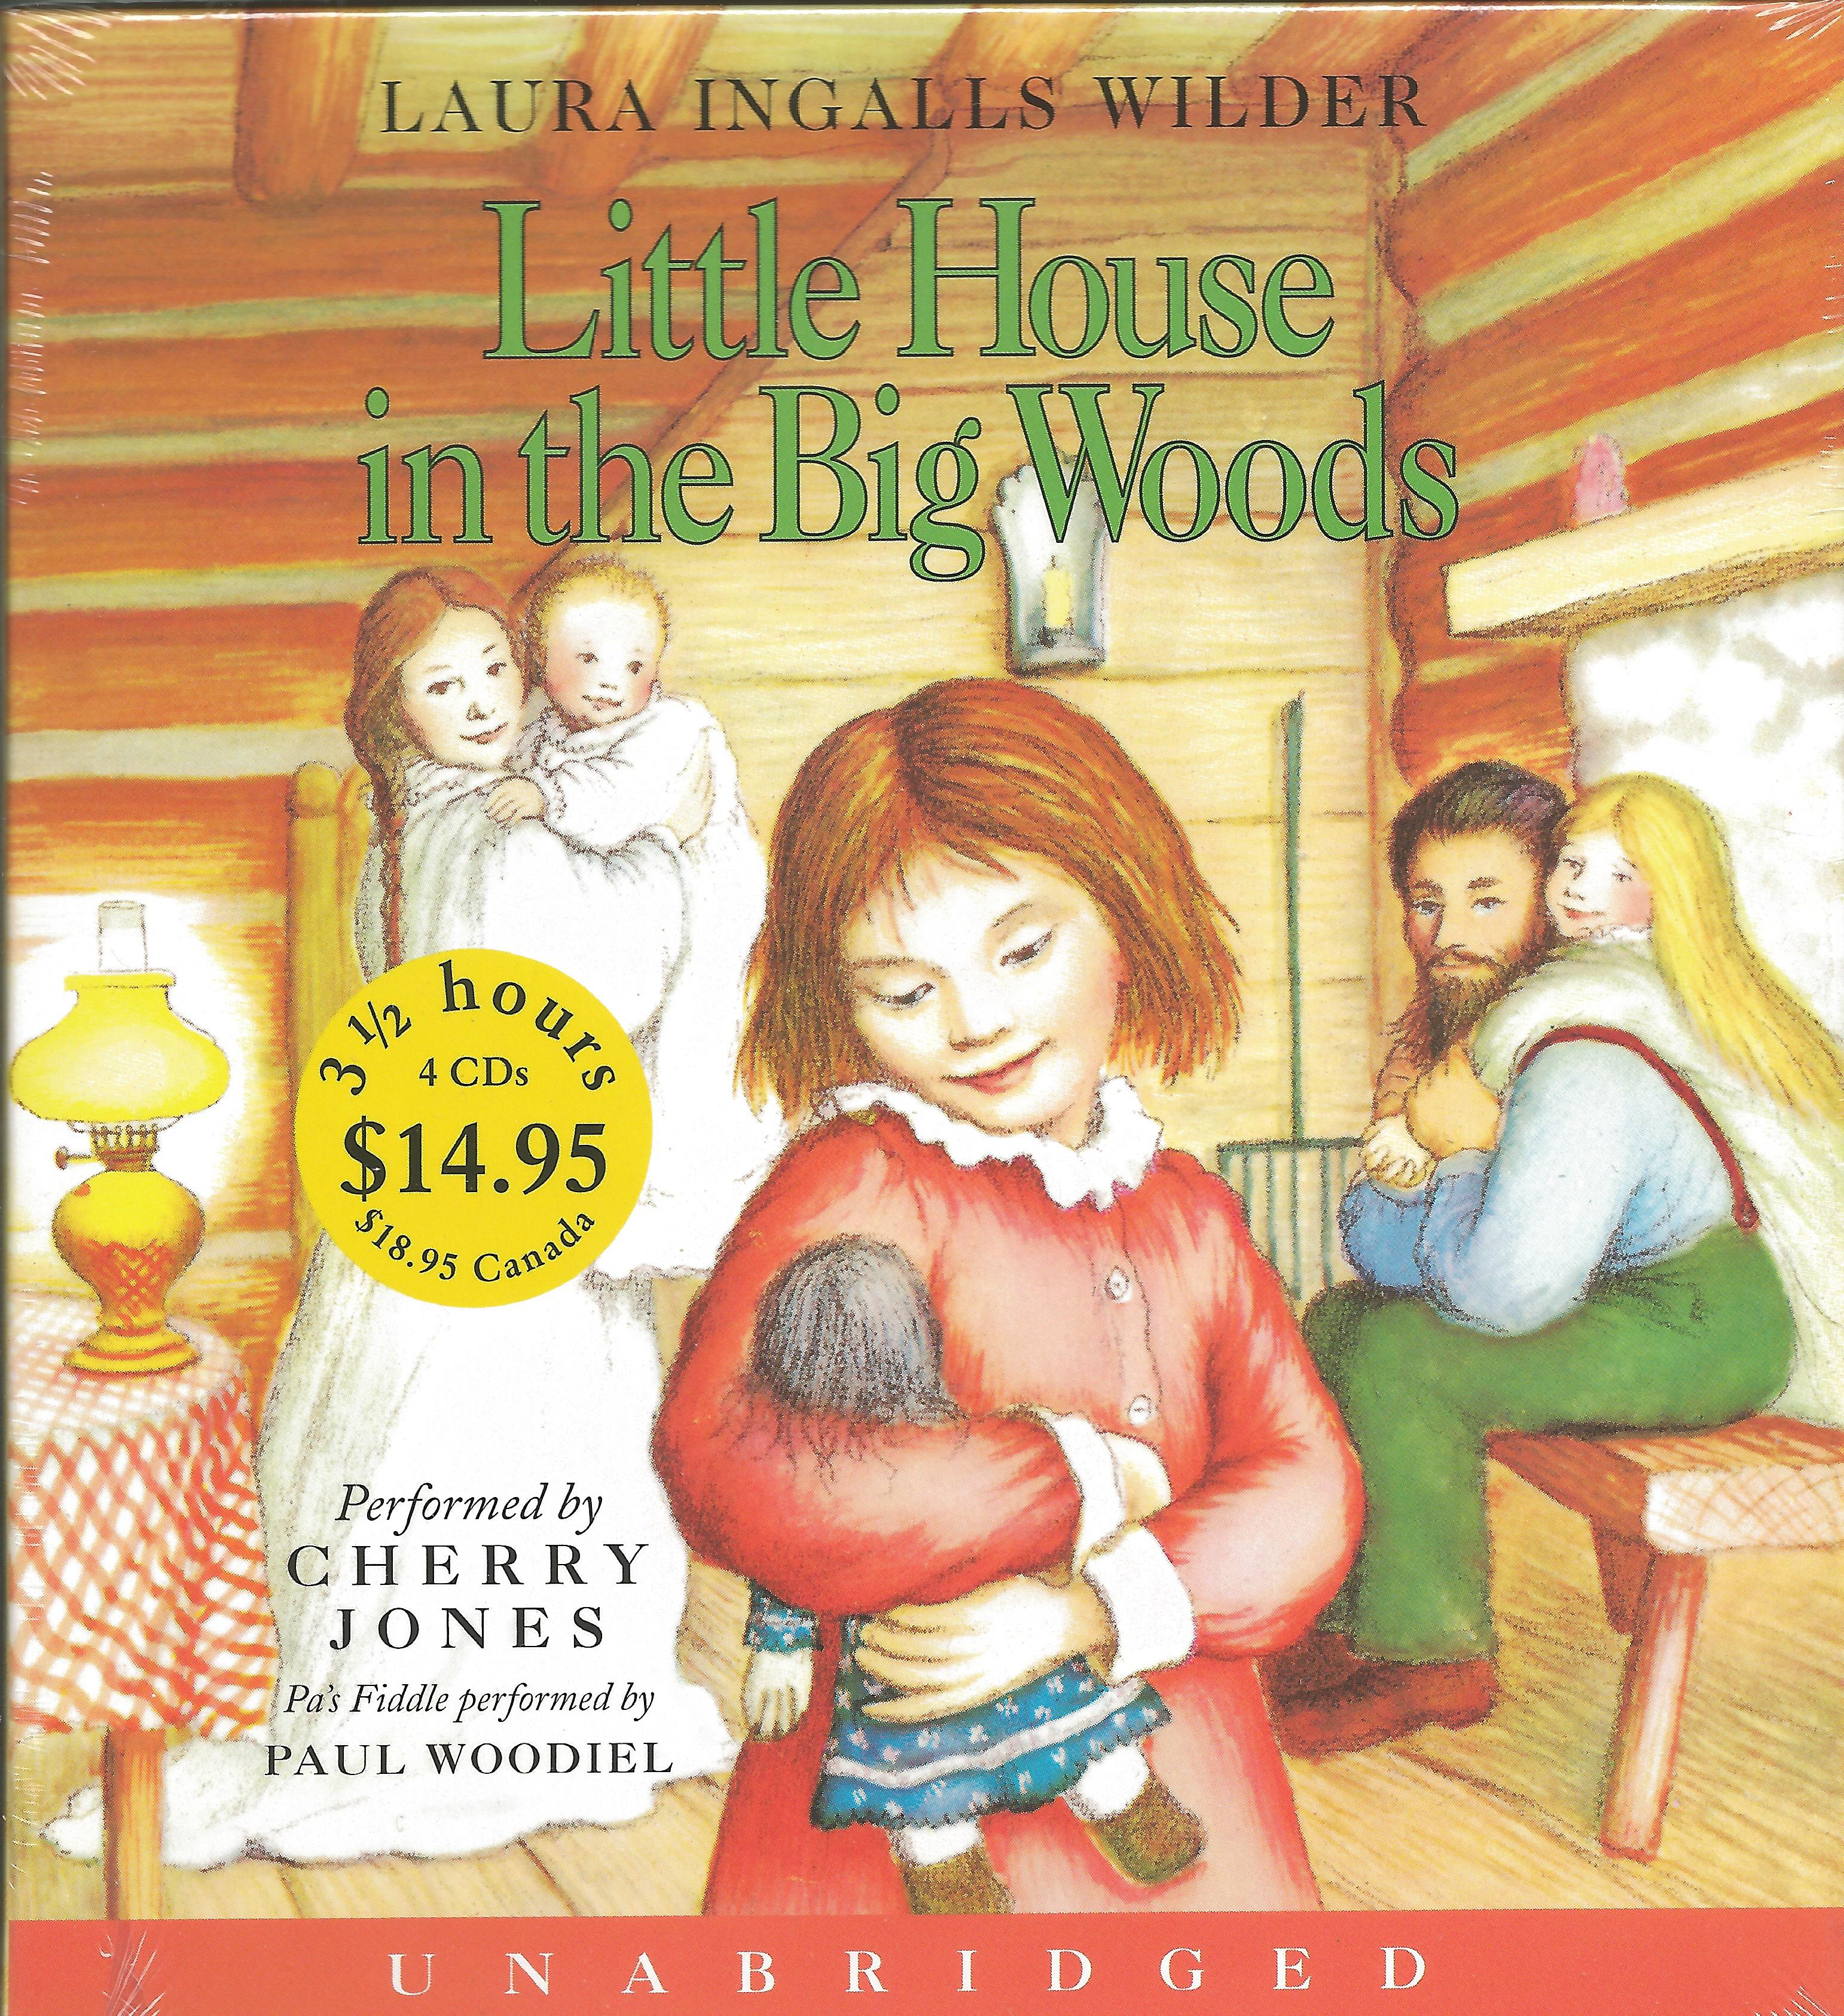 LITTLE HOUSE IN THE BIG WOODS - AUDIO CD